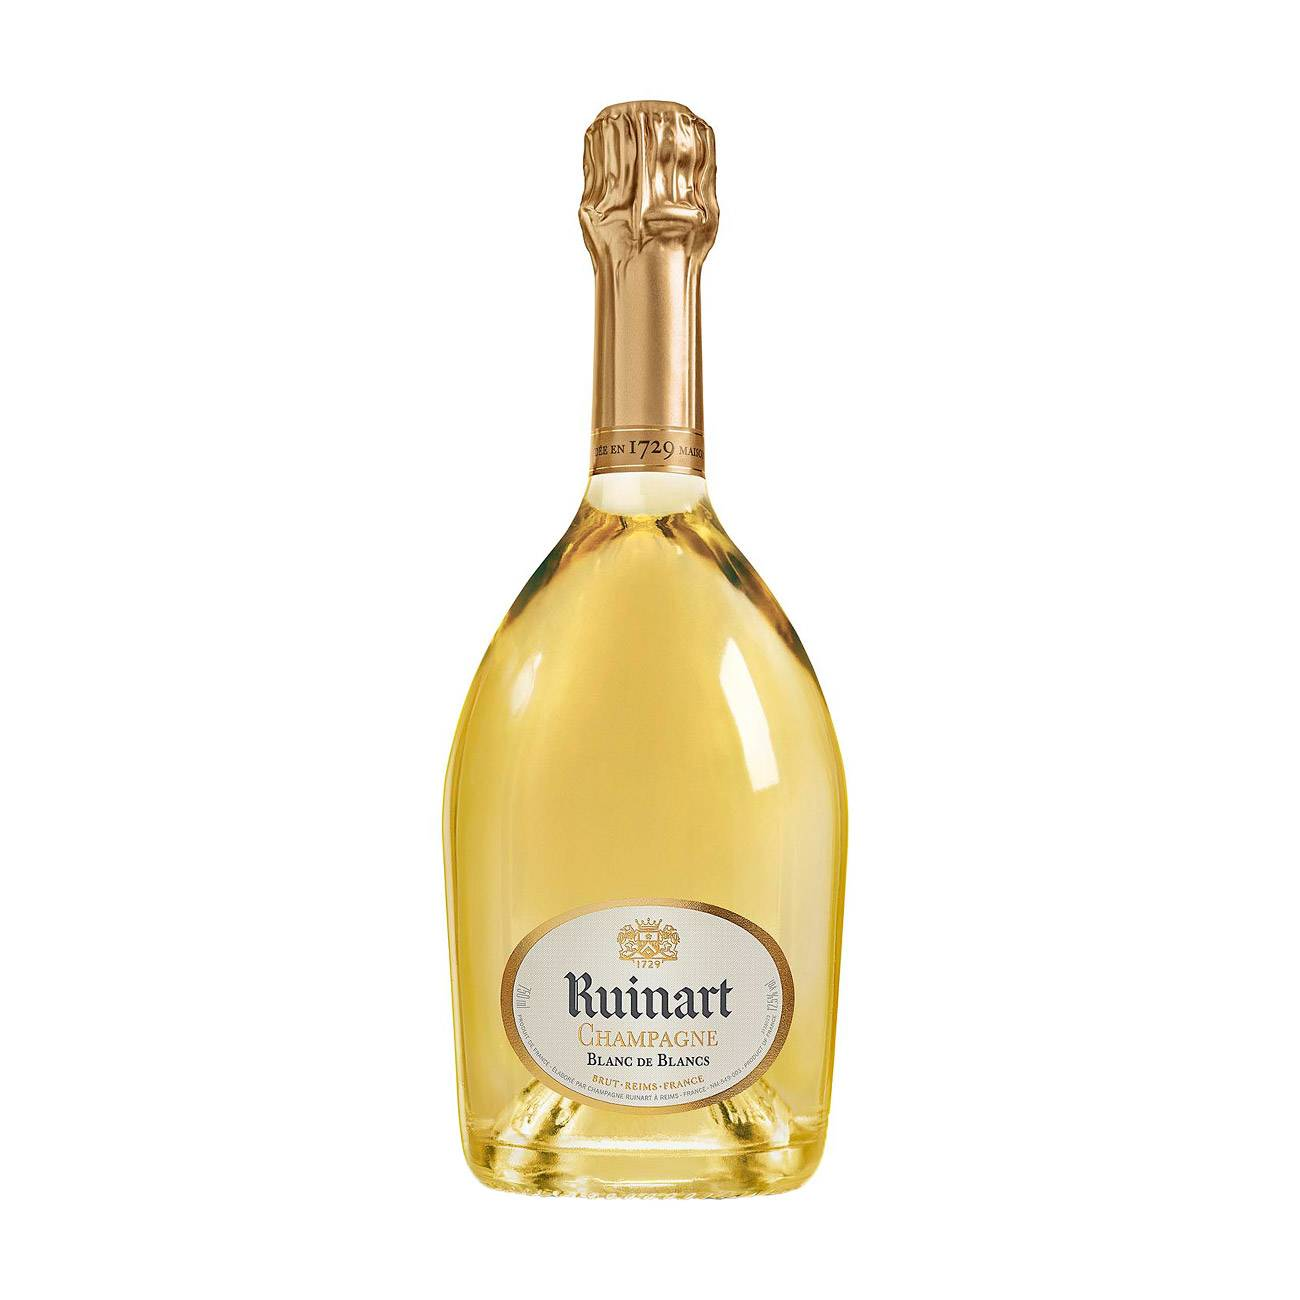 Sampanie, BLANC DE BLANCS 750ml, Ruinart